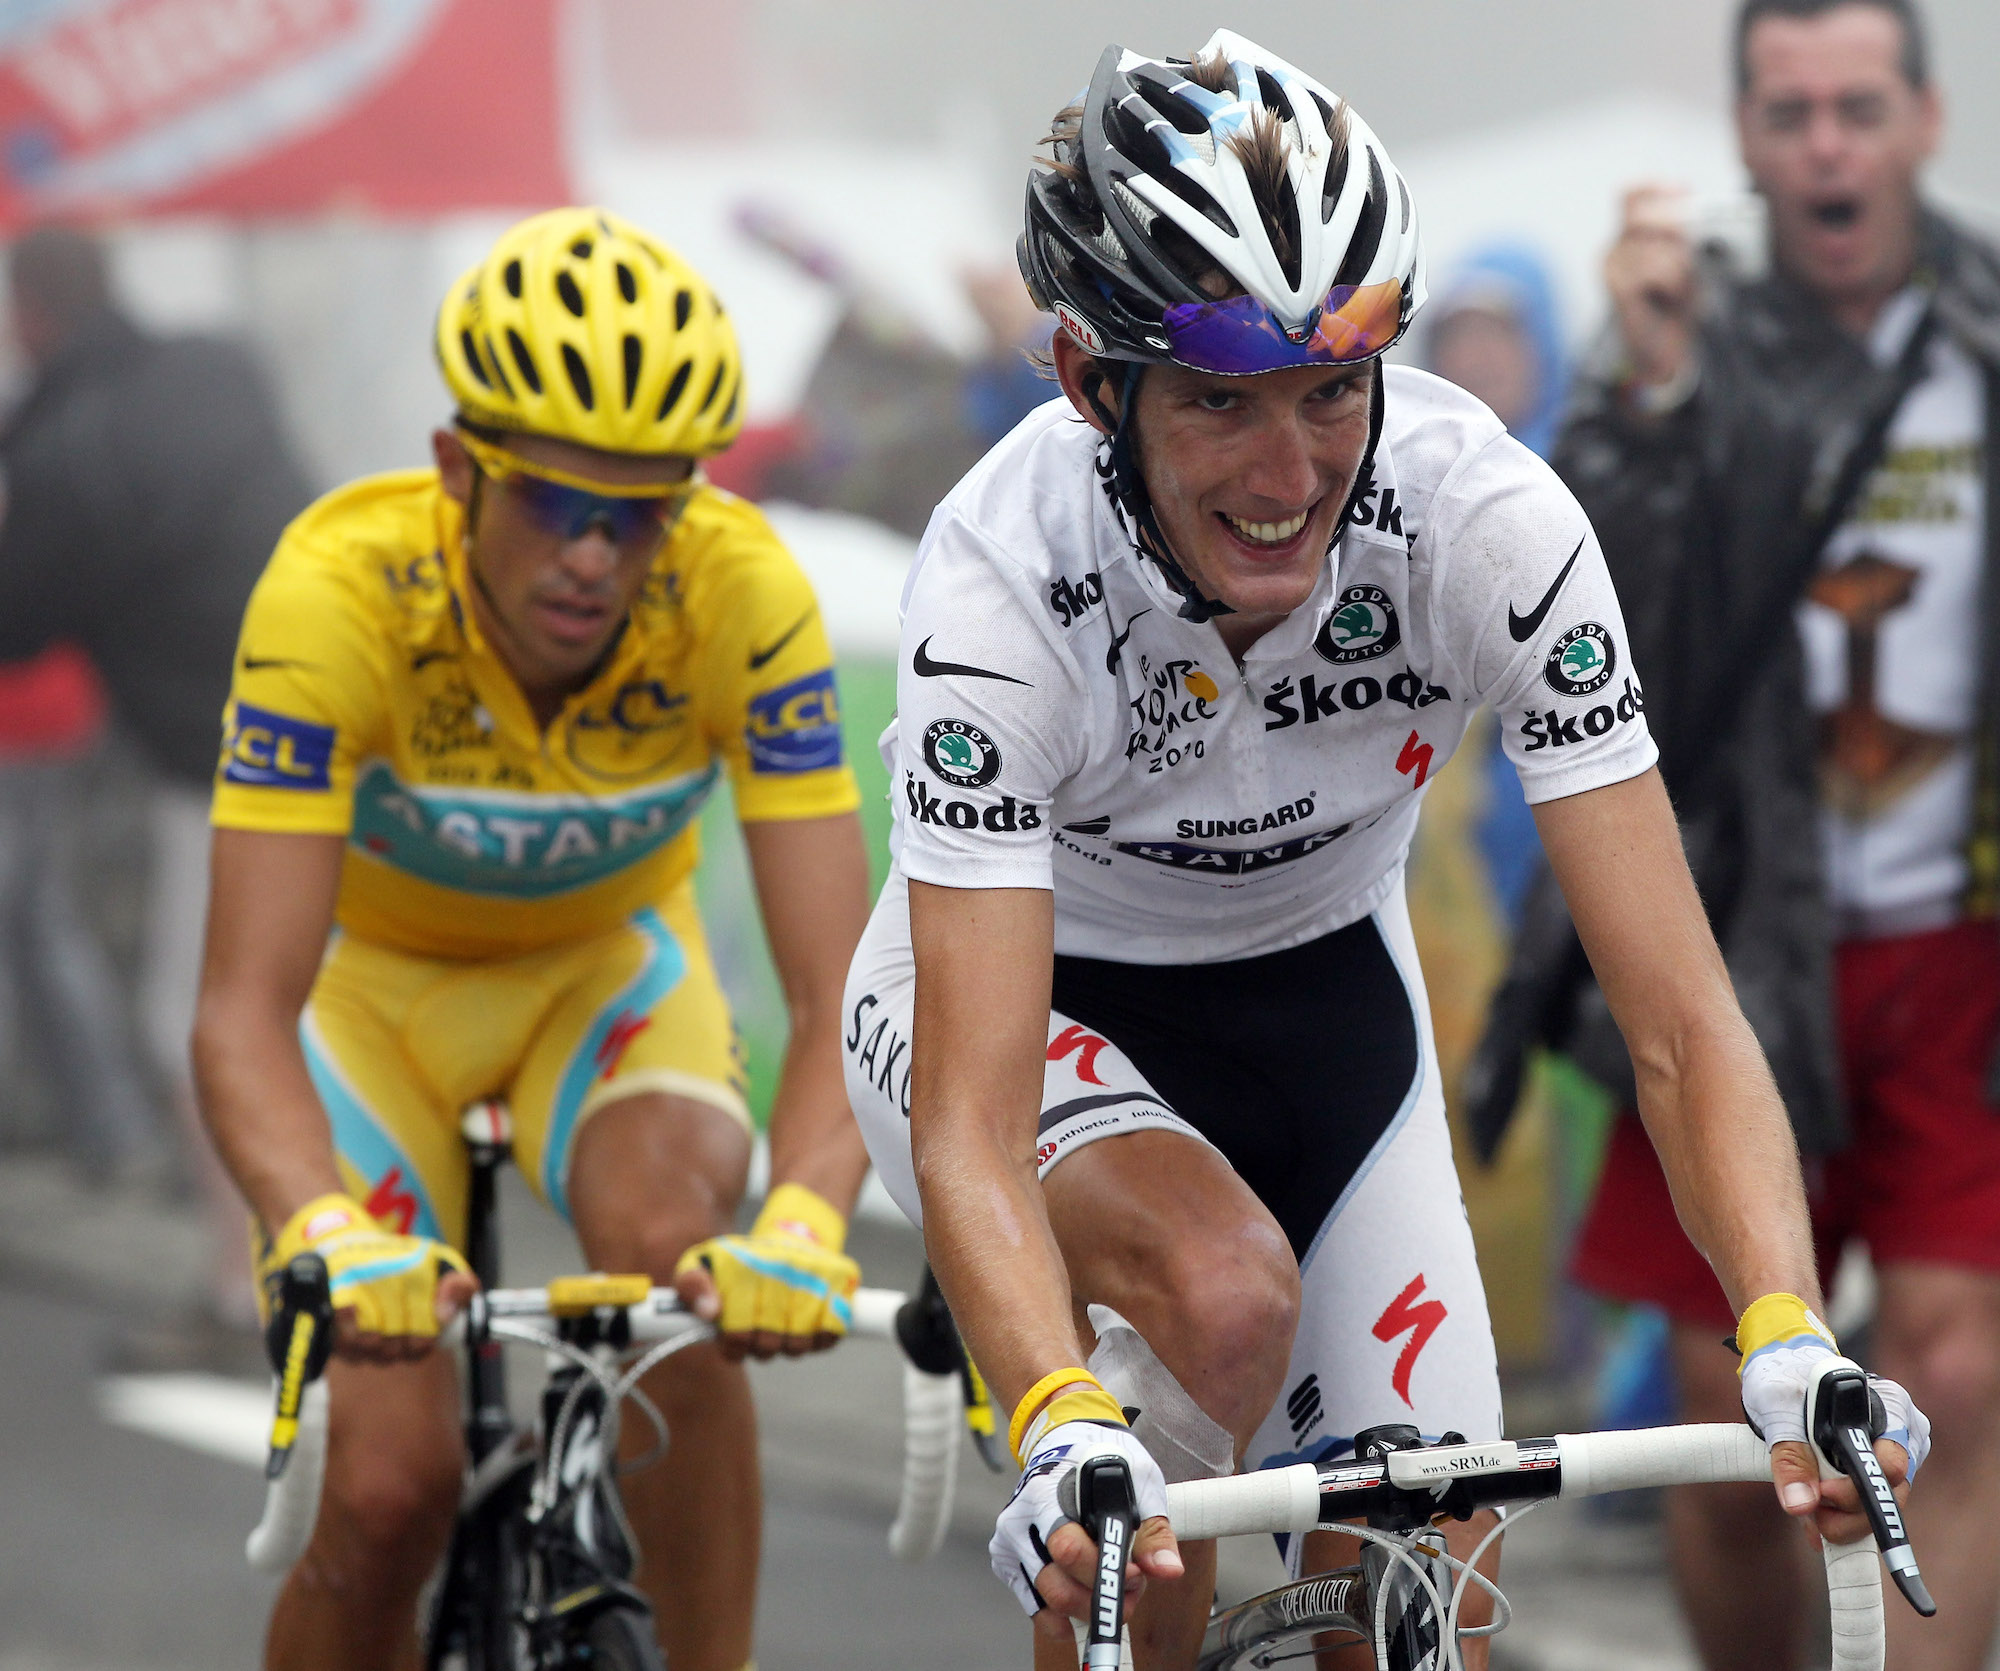 Andy Schleck: 'Alberto Contador did something he shouldn't have done, even if he denies it'